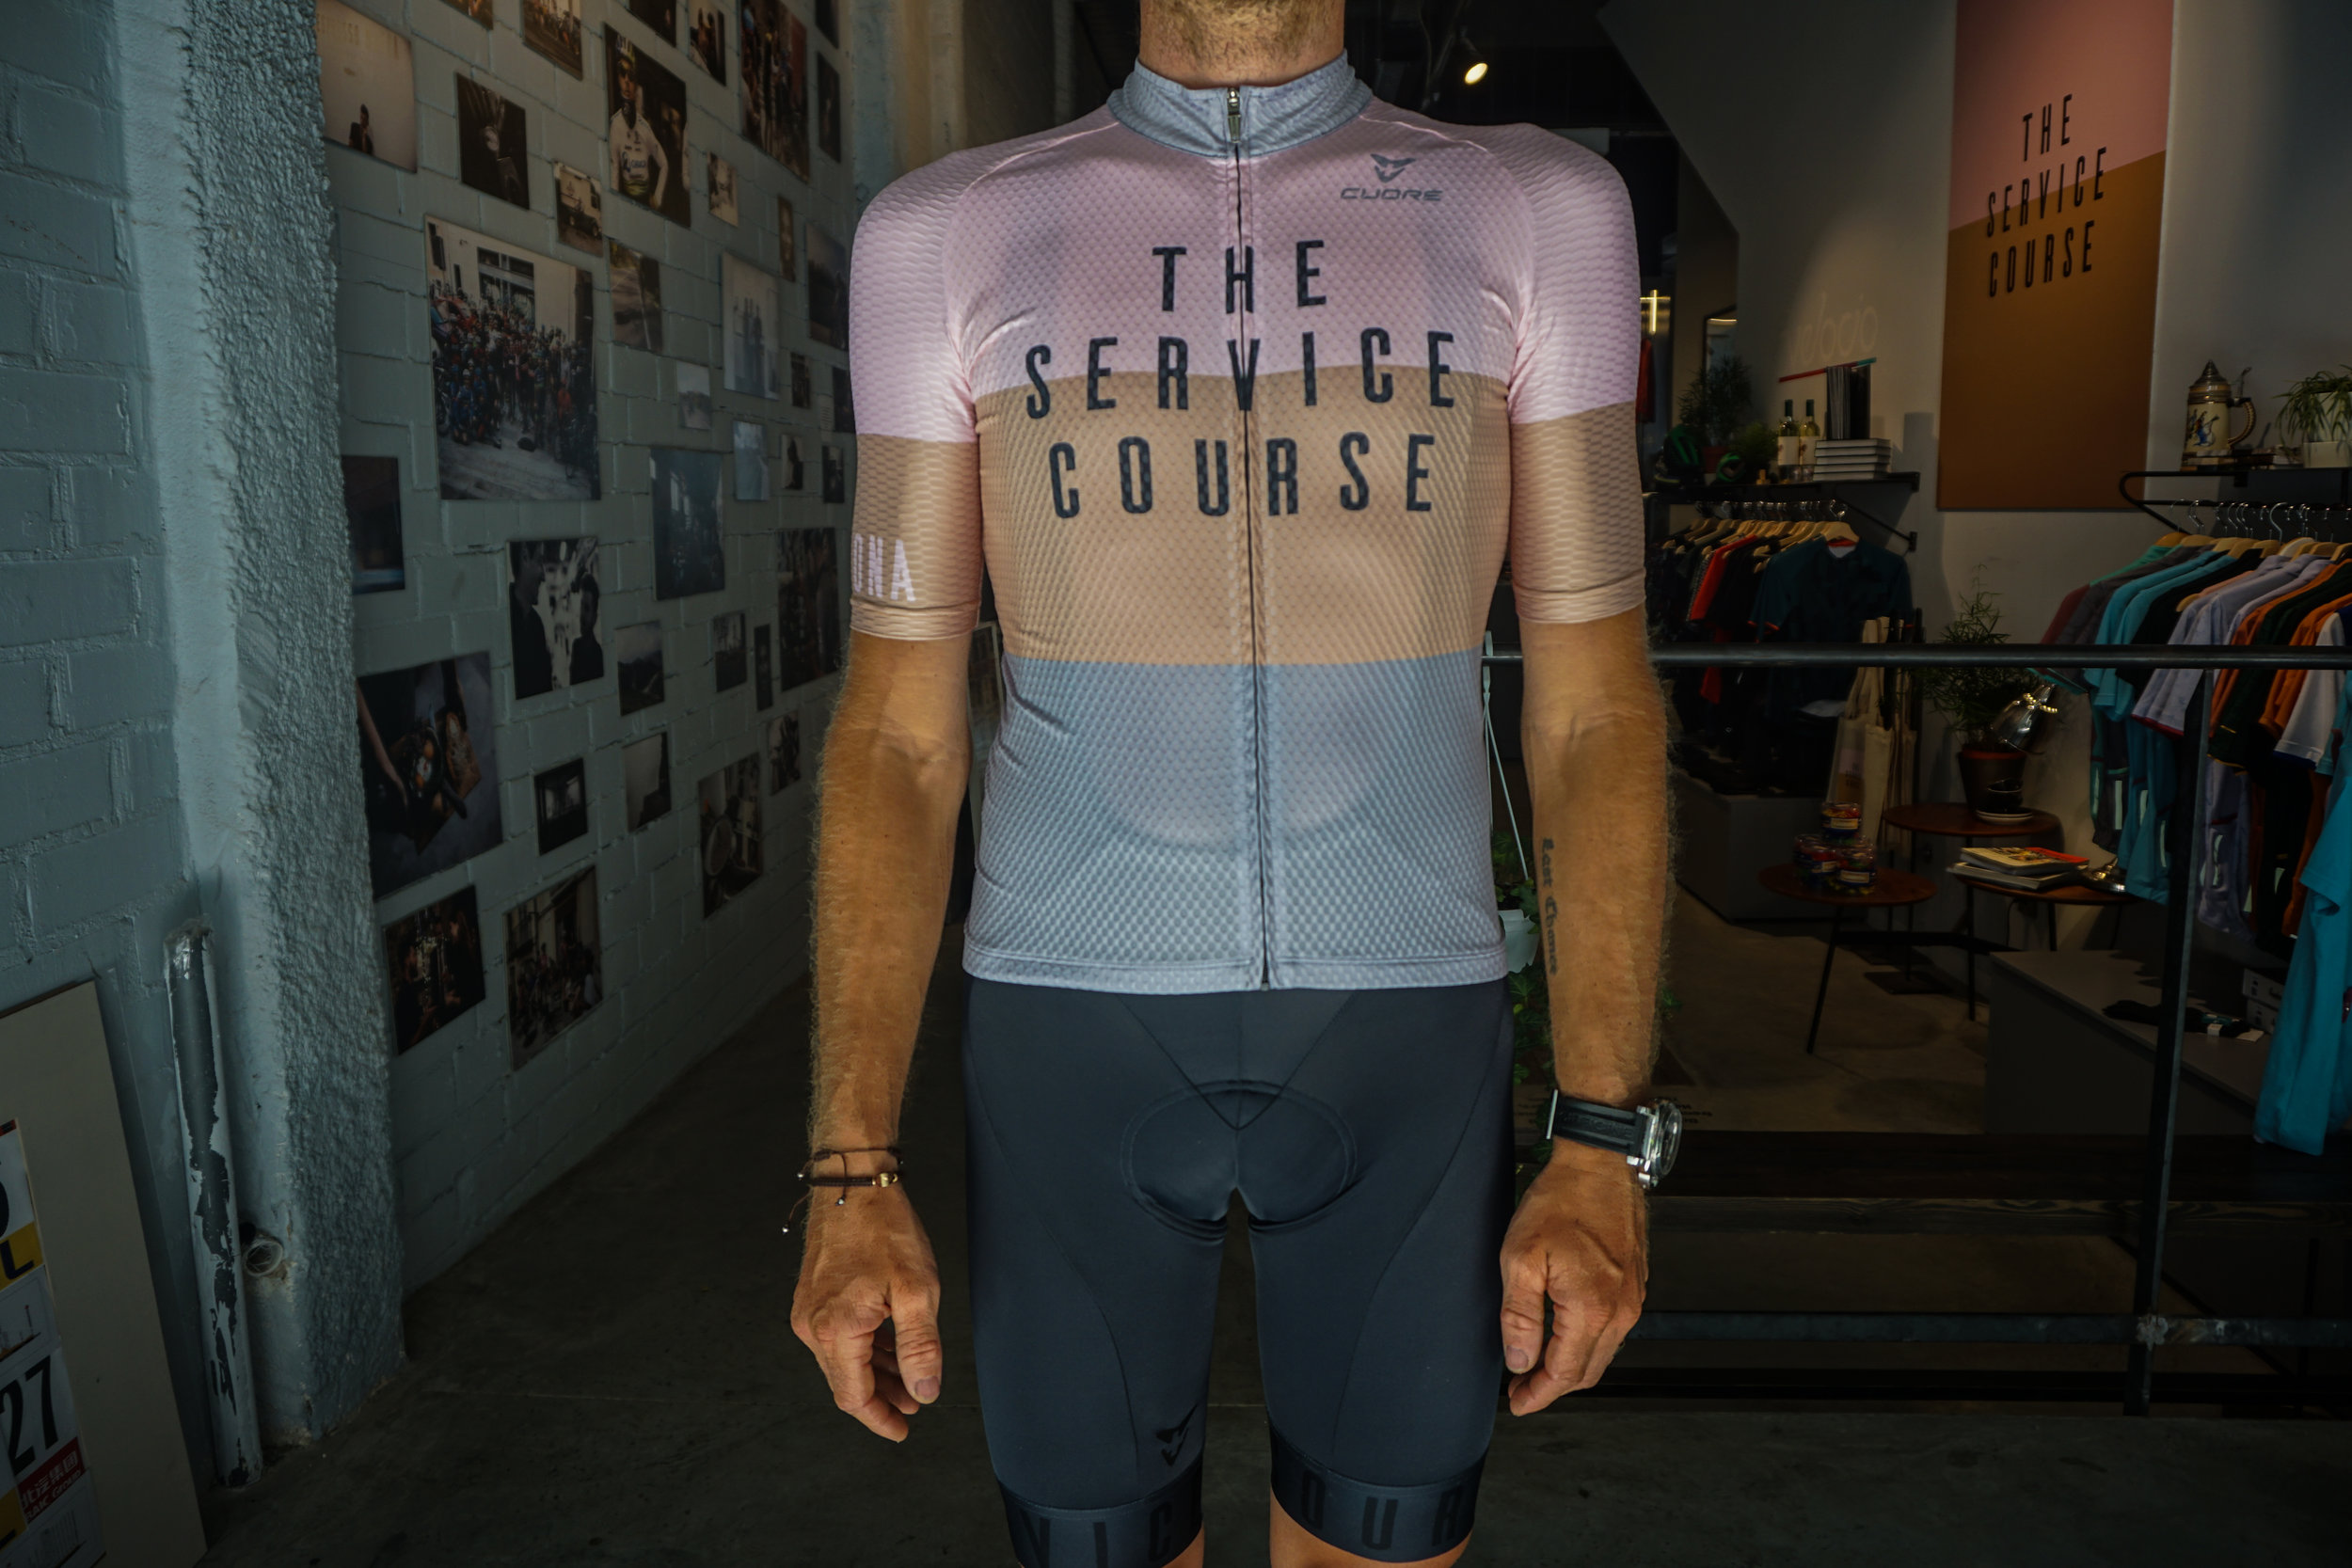 The Service Course Jersey -